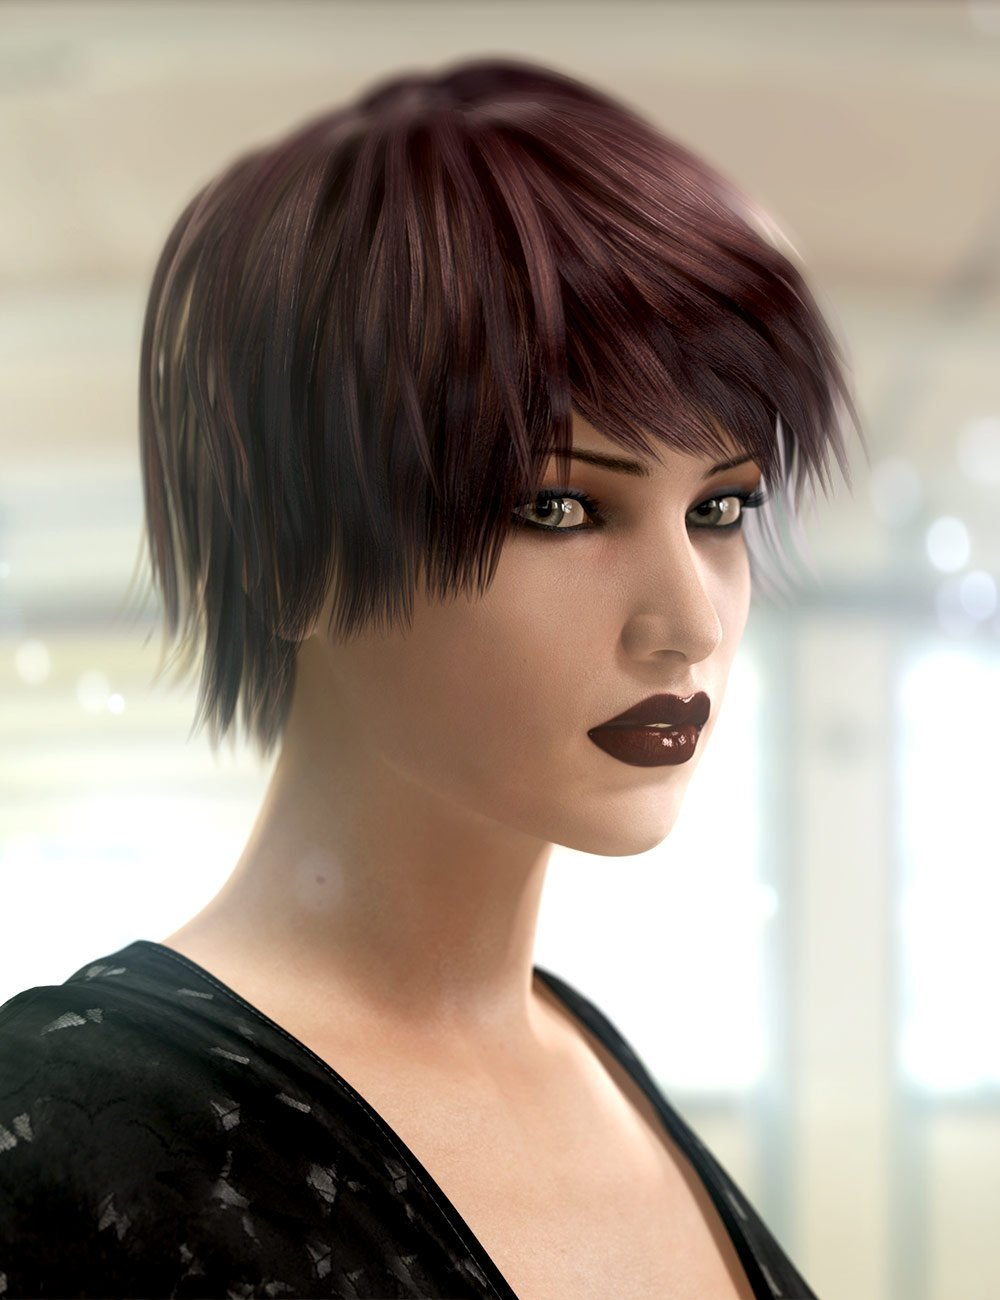 Taylor Hair by: SWAM, 3D Models by Daz 3D